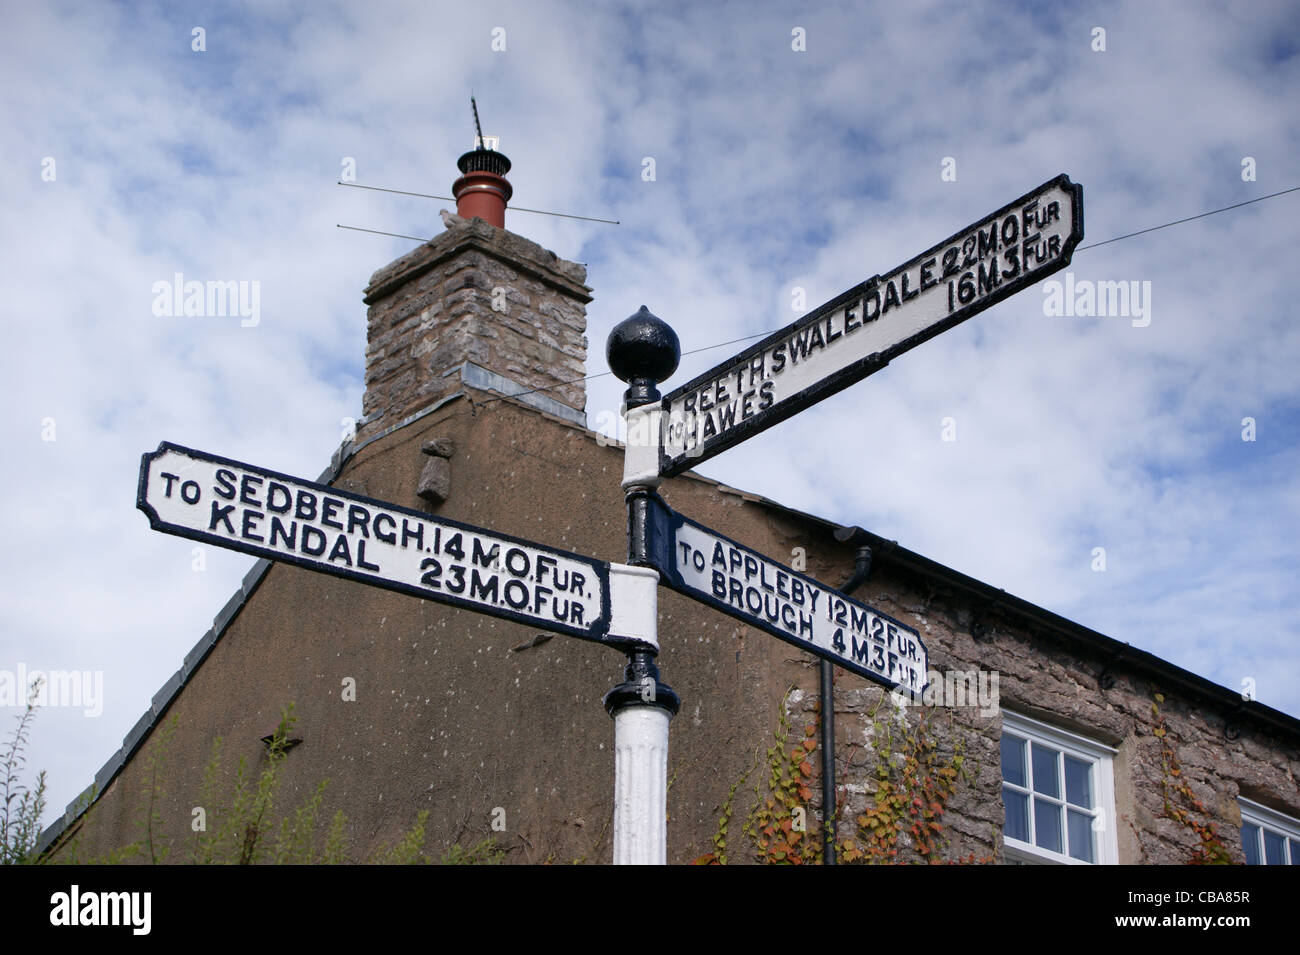 Road sign showing distances in miles and furlongs, Kirkby Stephen, Cumbria, England Stock Photo